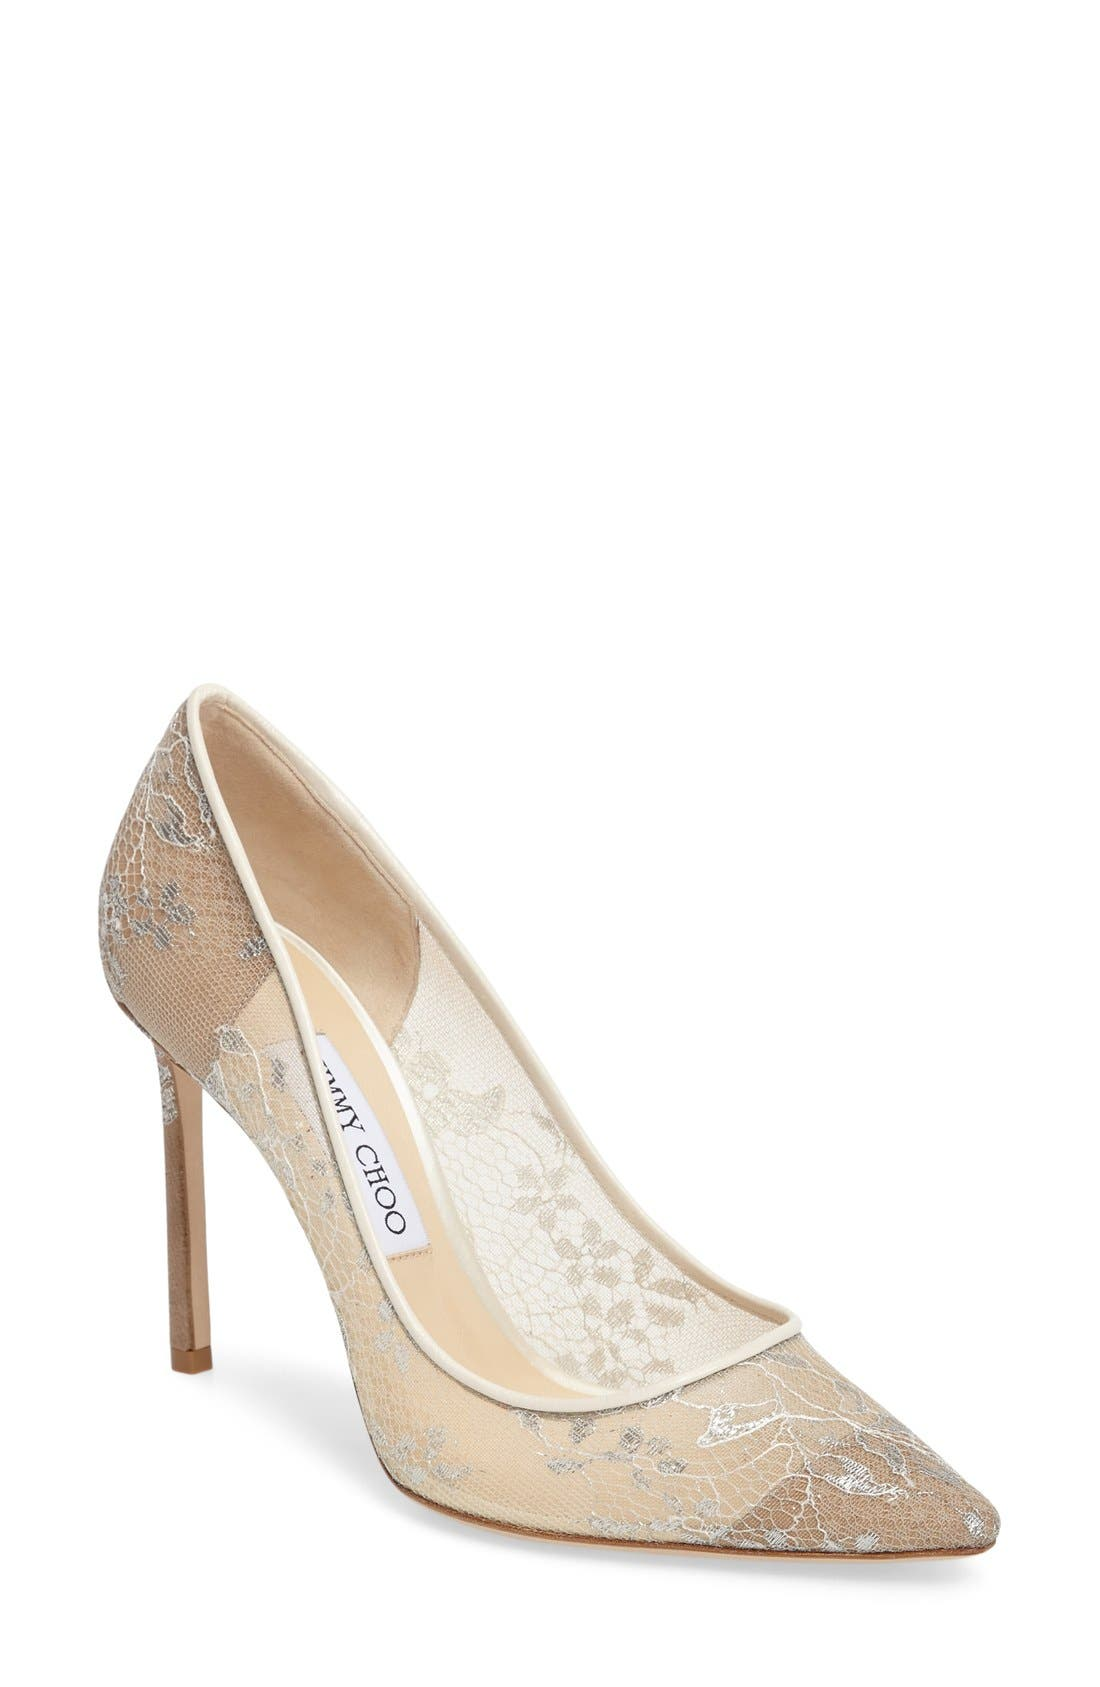 Main Image - Jimmy Choo 'Romy' Lace Pump (Women)